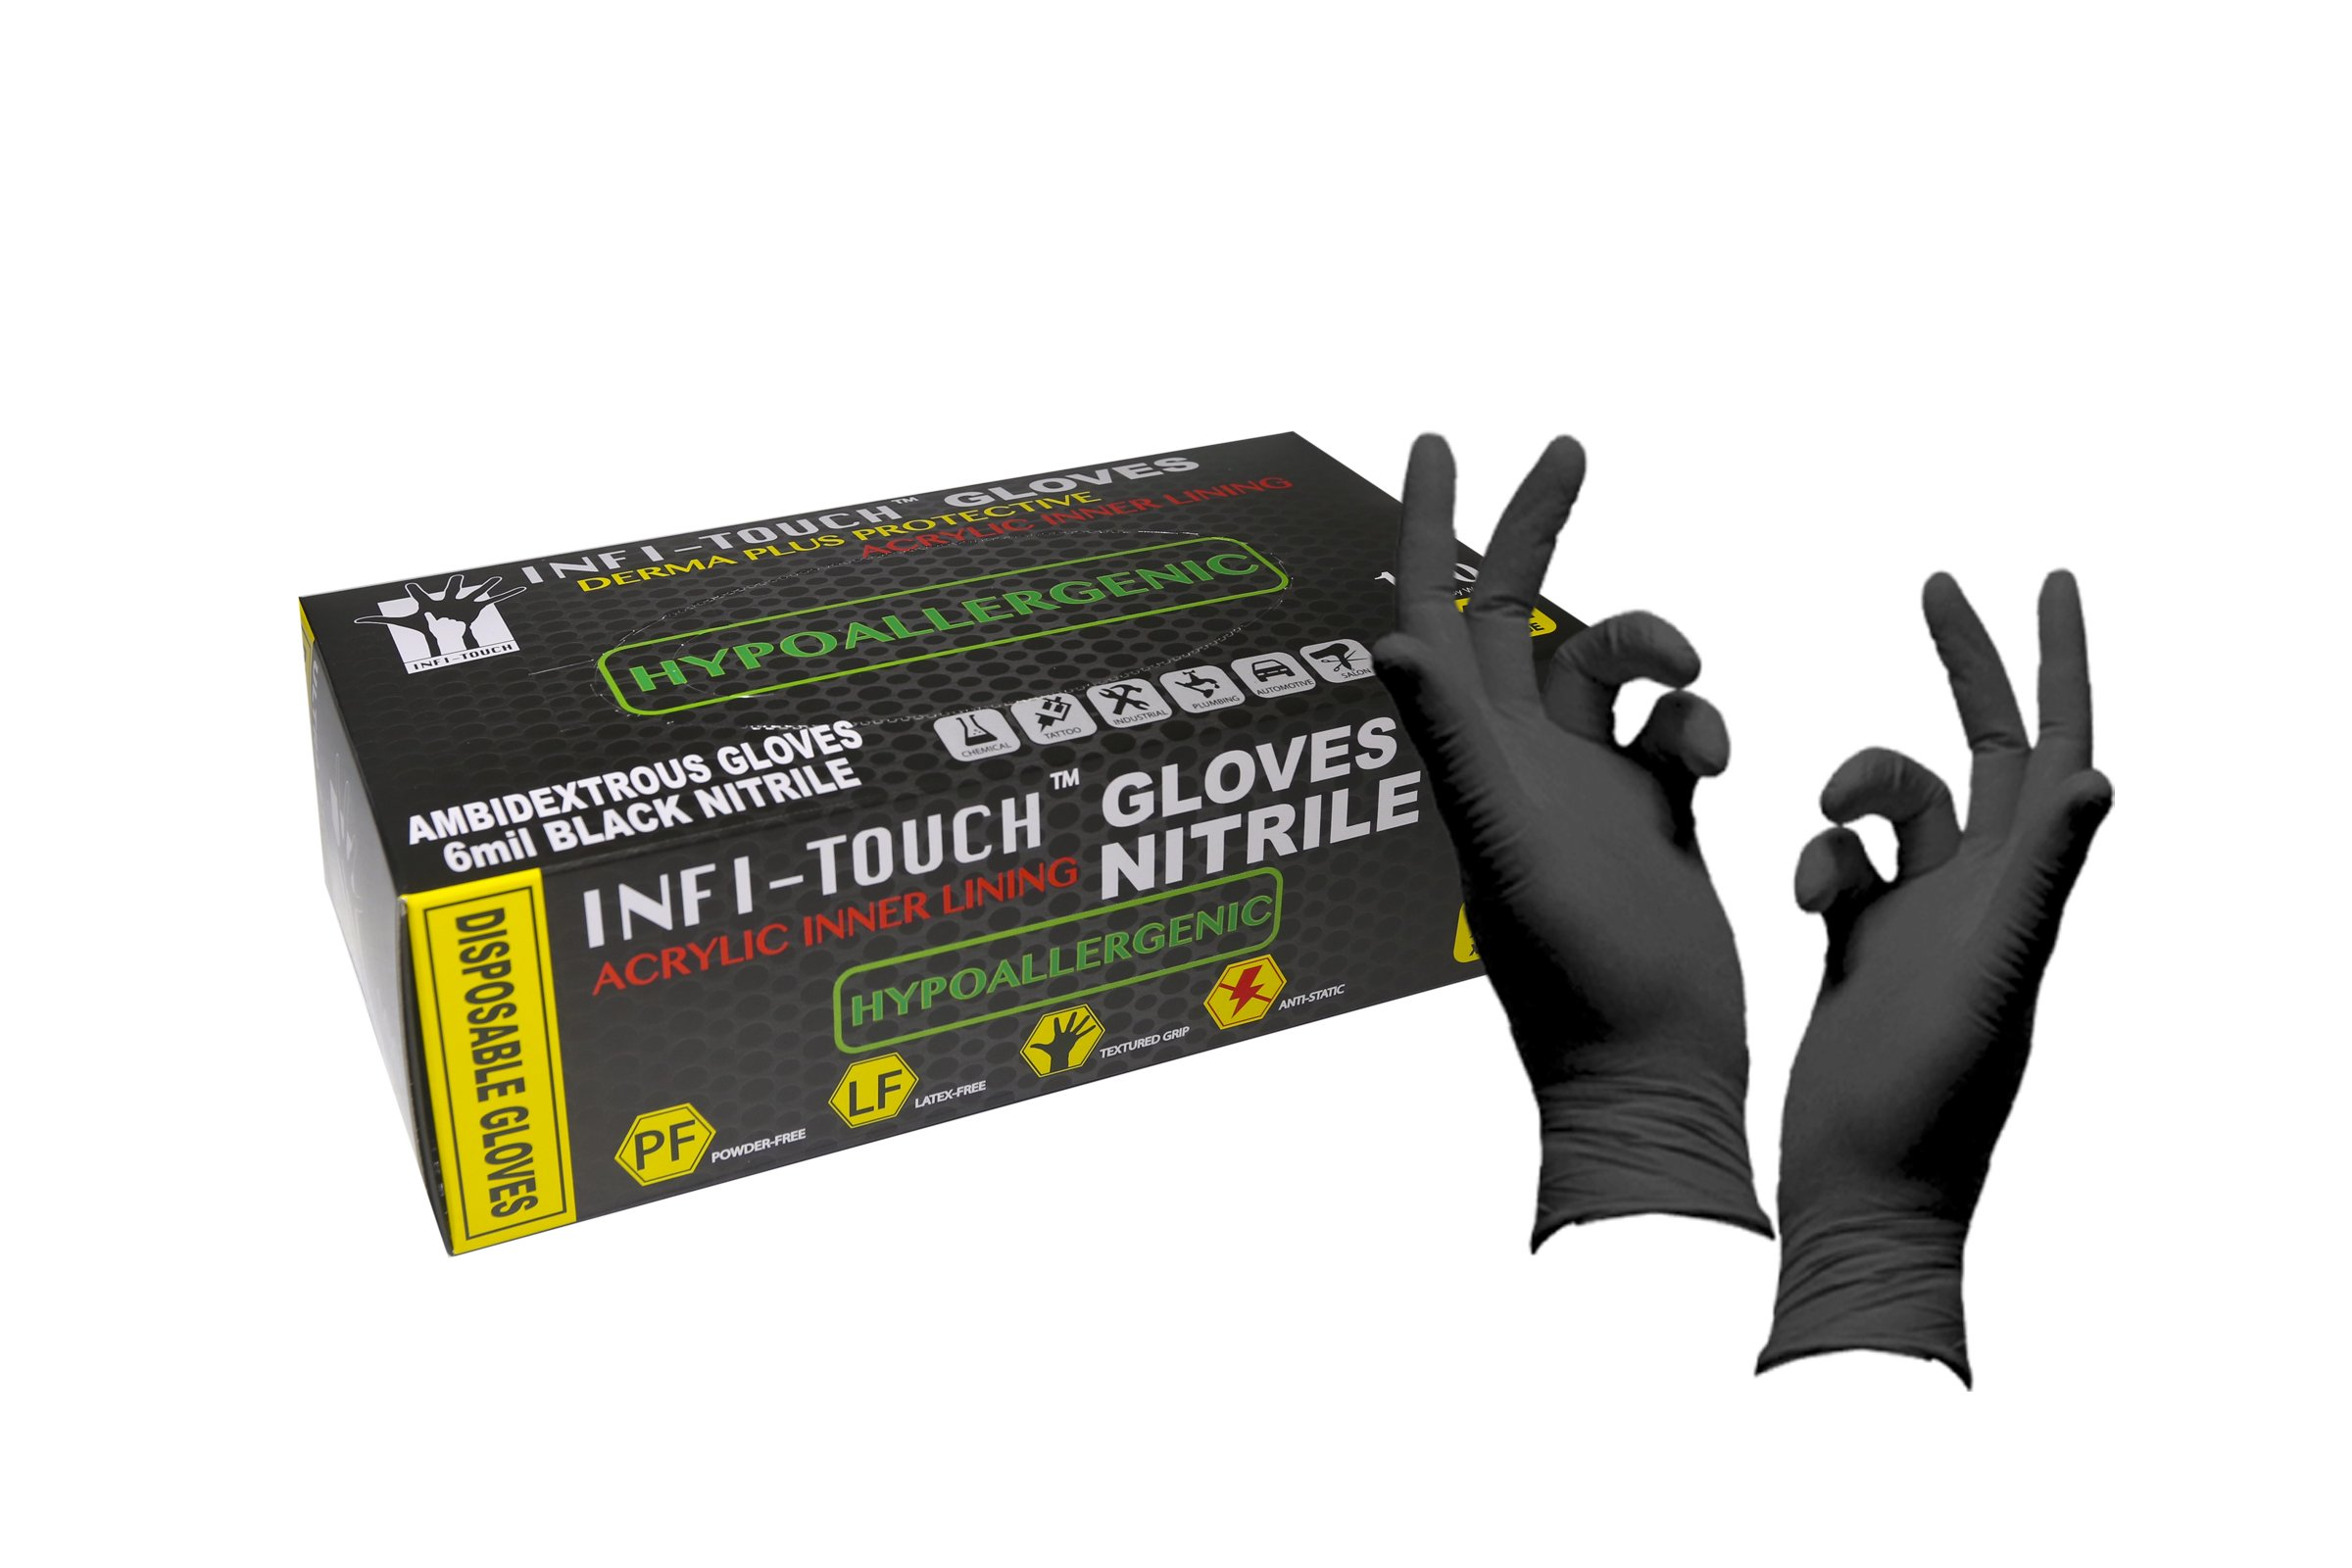 Infi-Touch Heavy Duty, Black Nitrile Gloves, 9.5'' Length, Powder Free, Hypoallergenic, 6 Mil Thickness, 100 Count - Large